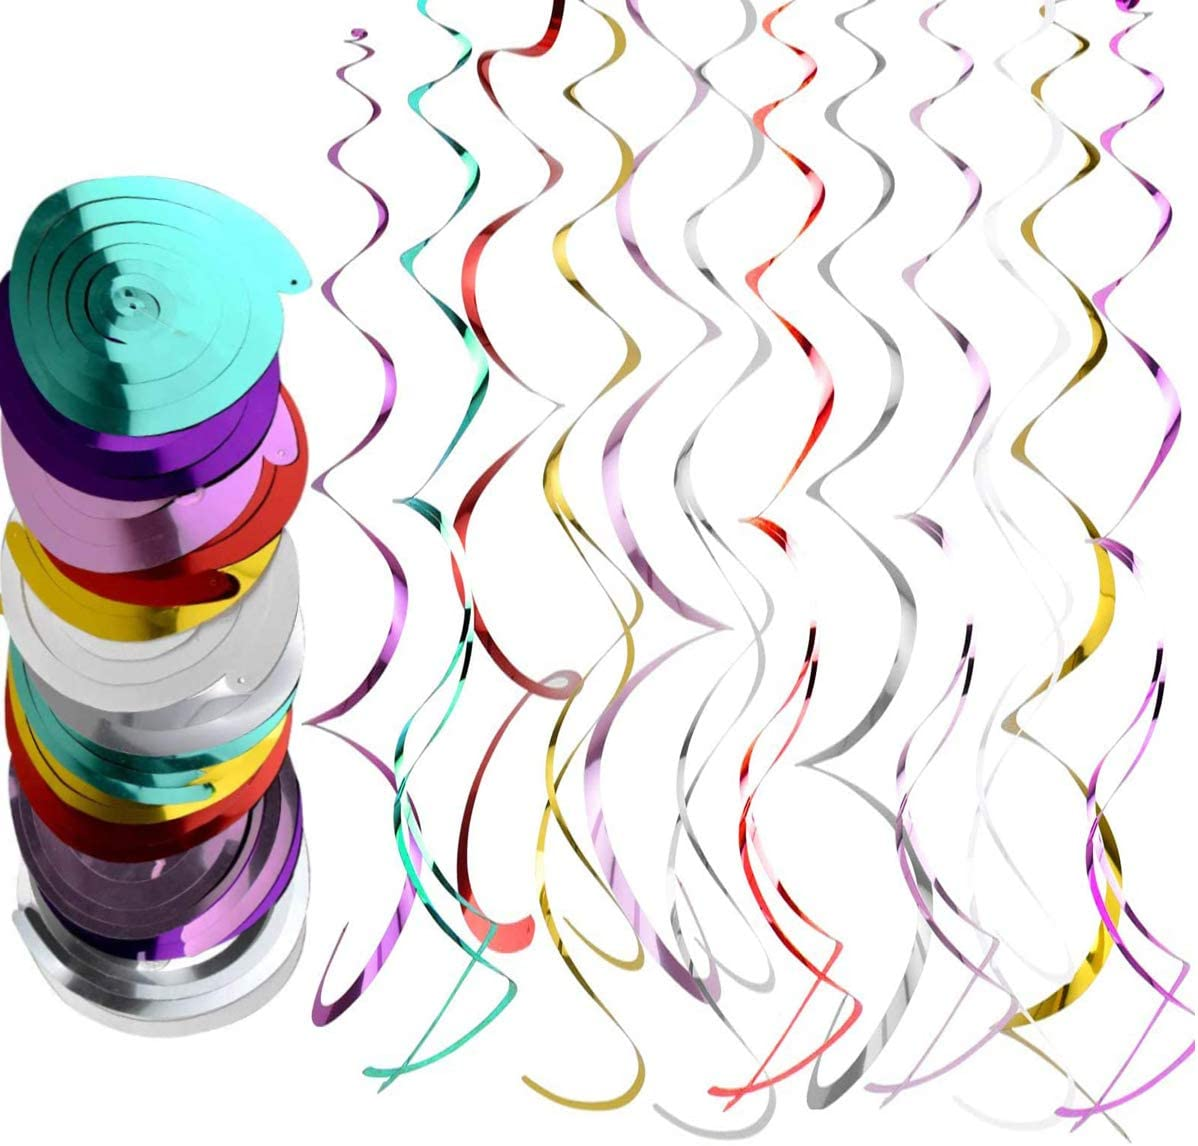 18 PCS Now free shipping Multicolor Hanging Swirl sold out Party Decorations Stream Spiral